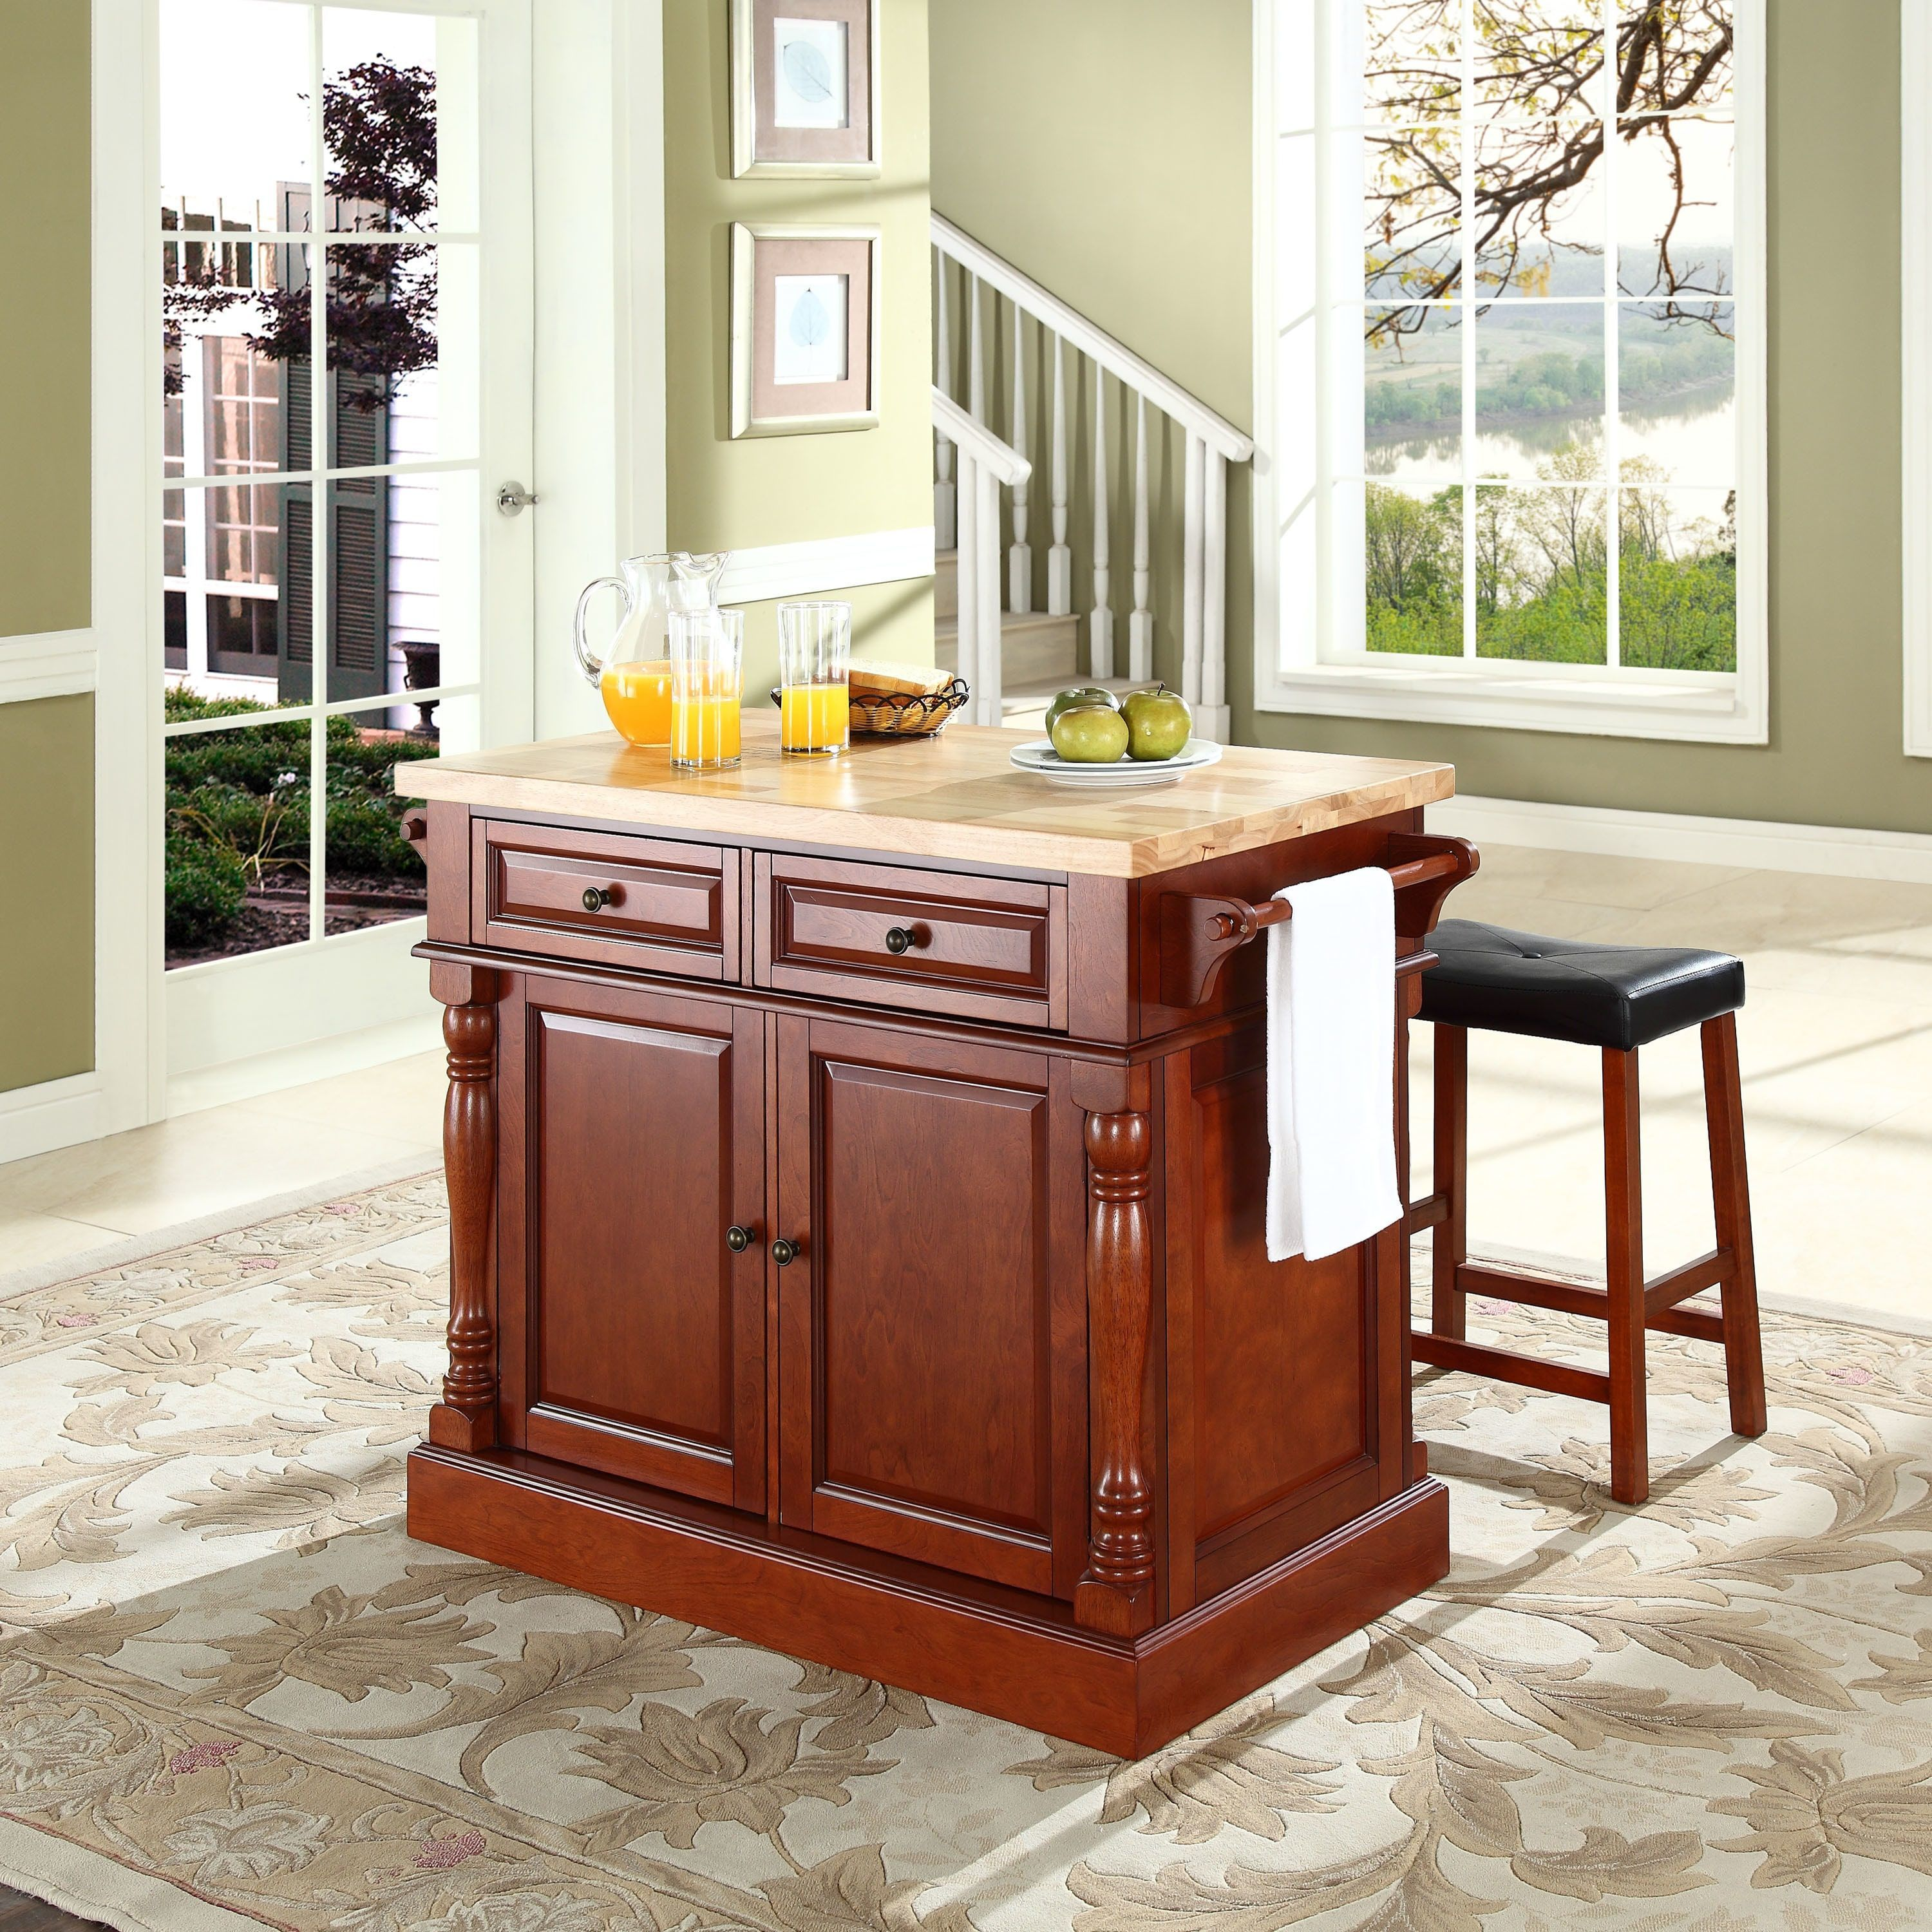 Crosley Furniture Oxford Butcher Block Top Kitchen Island In Cherry Finish With 24 Upholstered Saddle Stools Brown